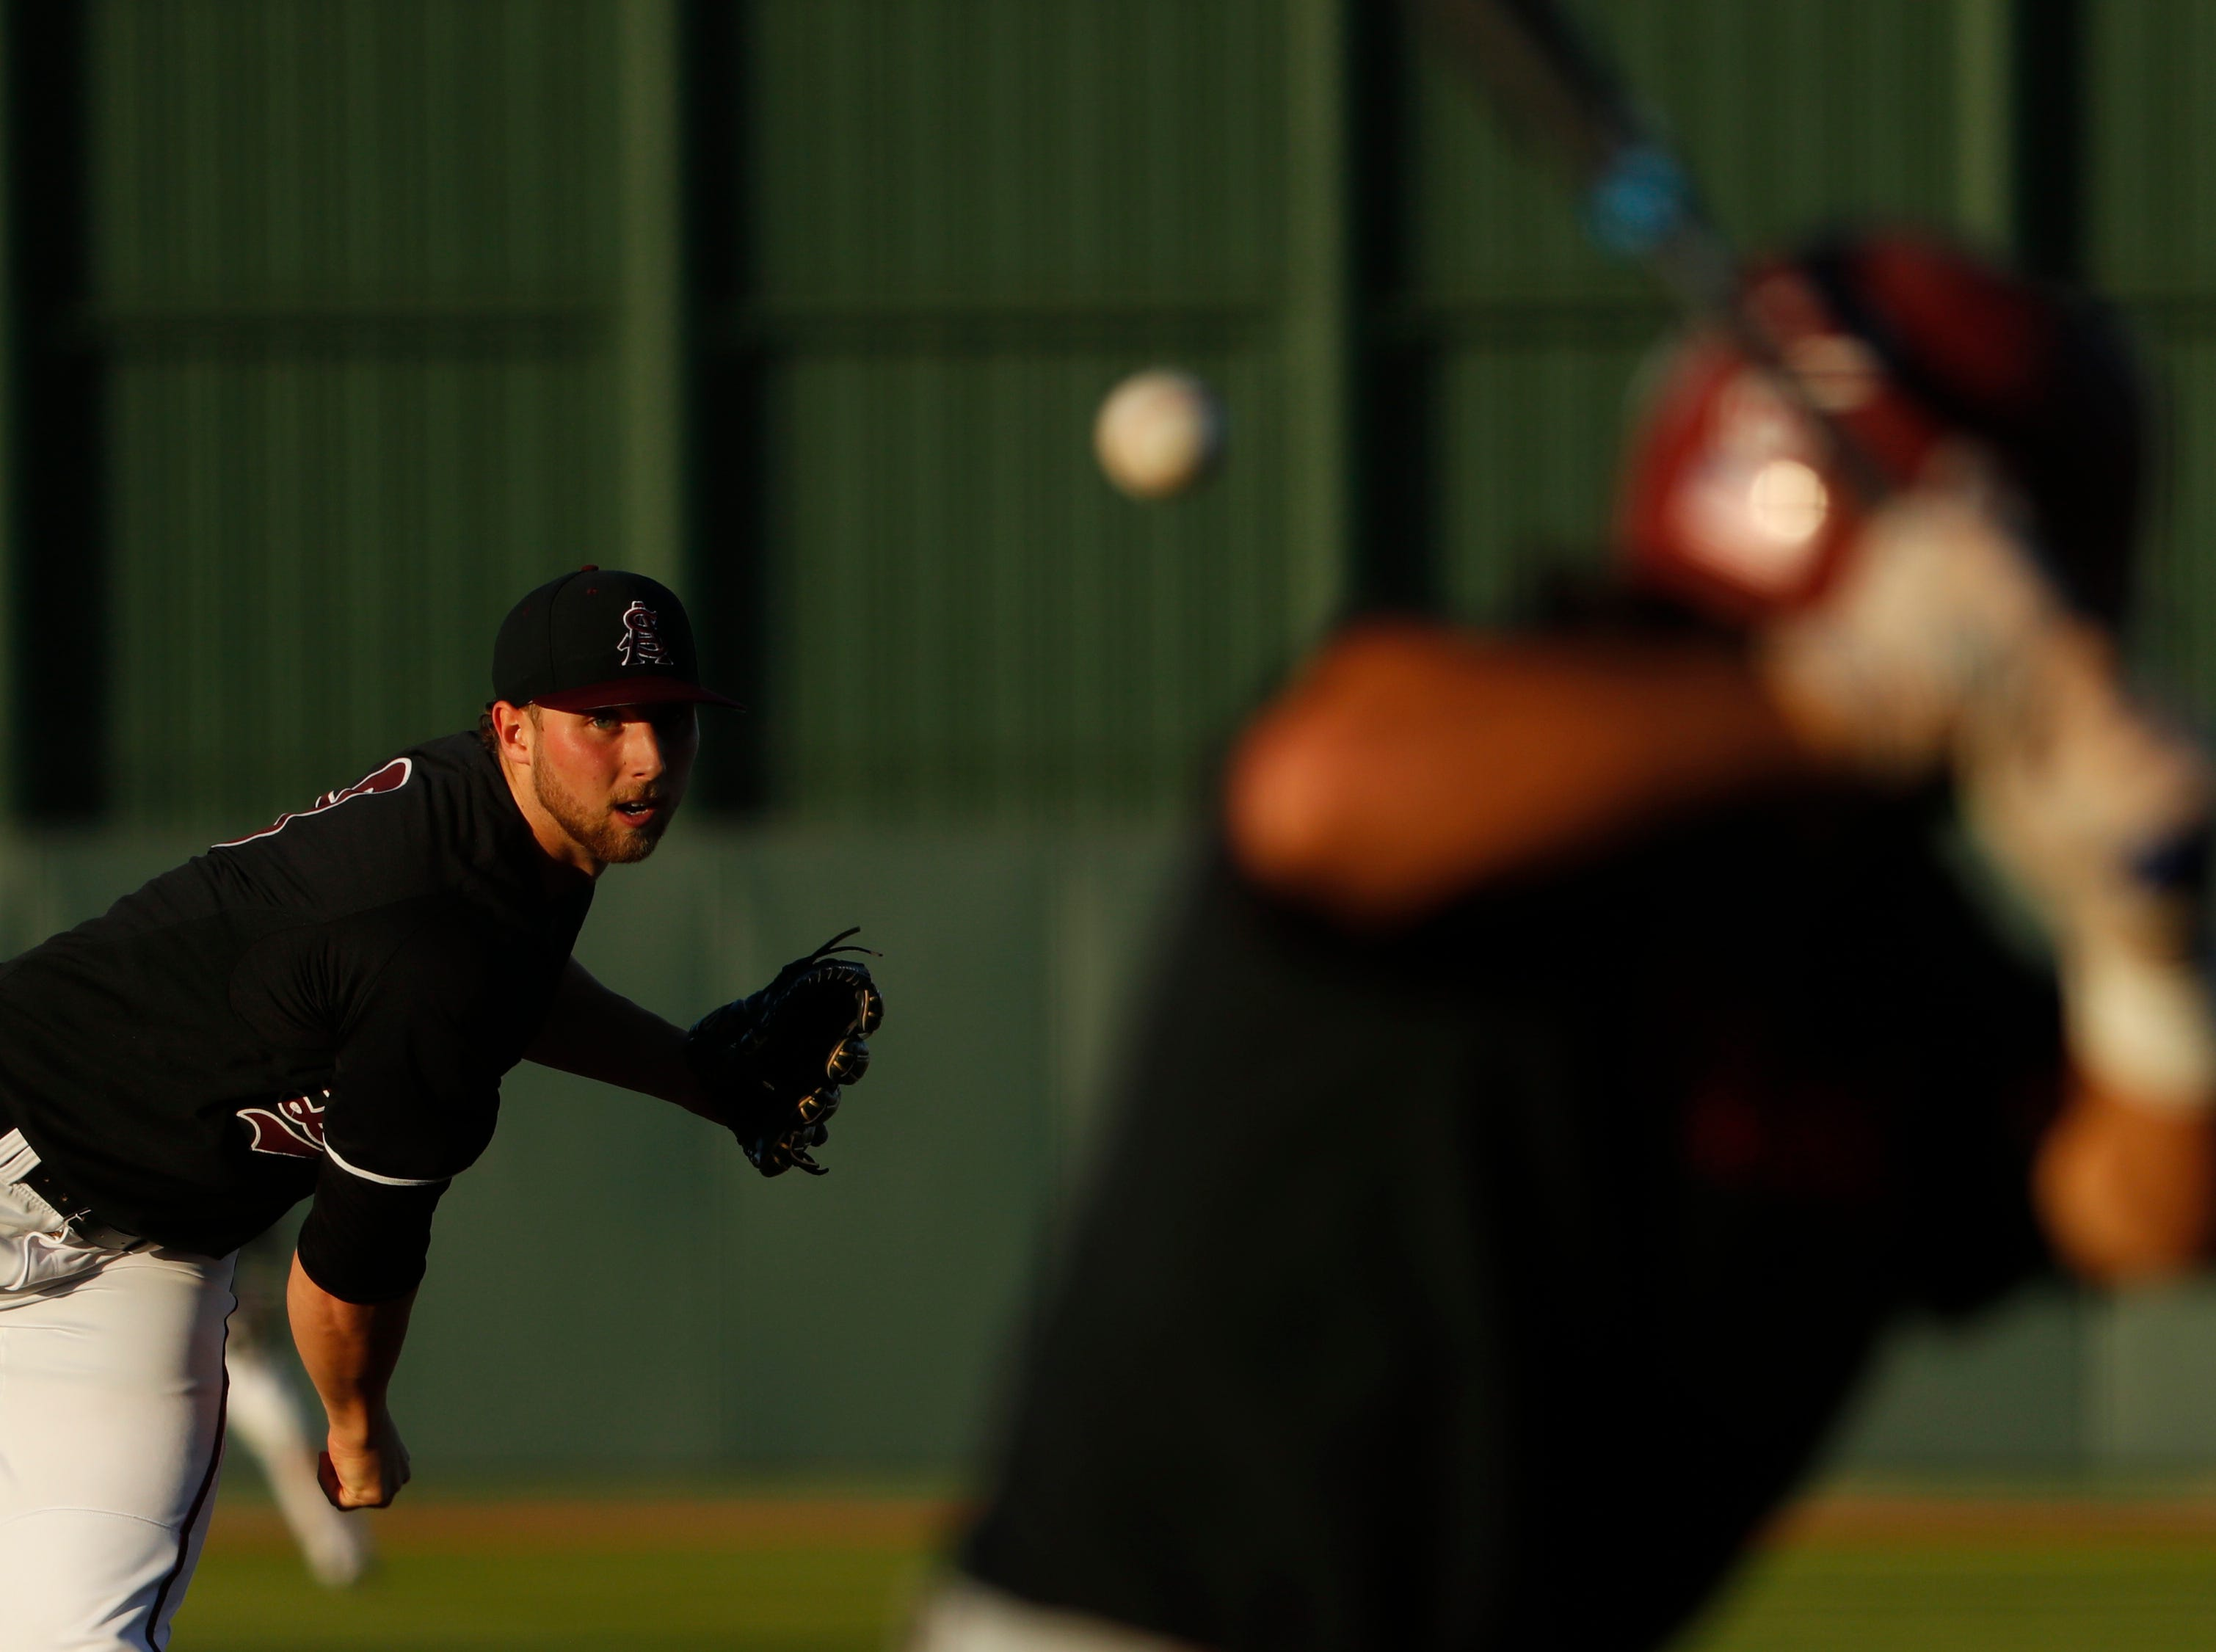 ASU's Alec Marsh (8) pitches against Stanford during the first inning at Phoenix Municipal Stadium in Phoenix, Ariz. on May 23, 2019.